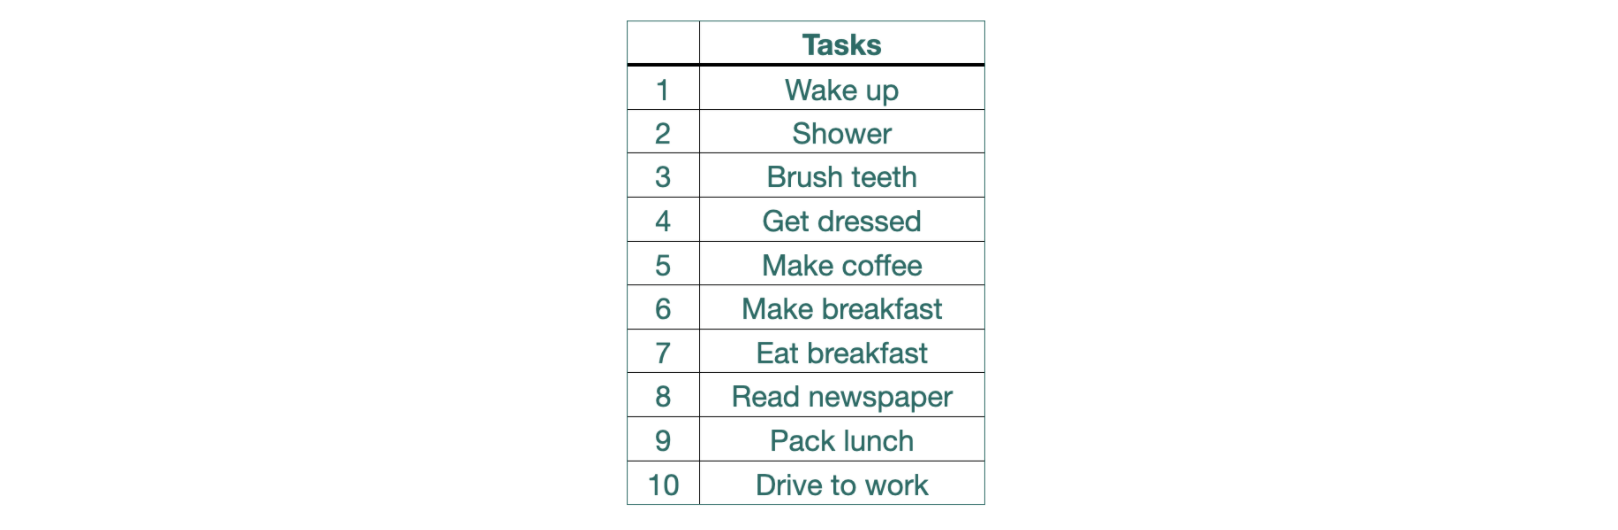 Initial workflow